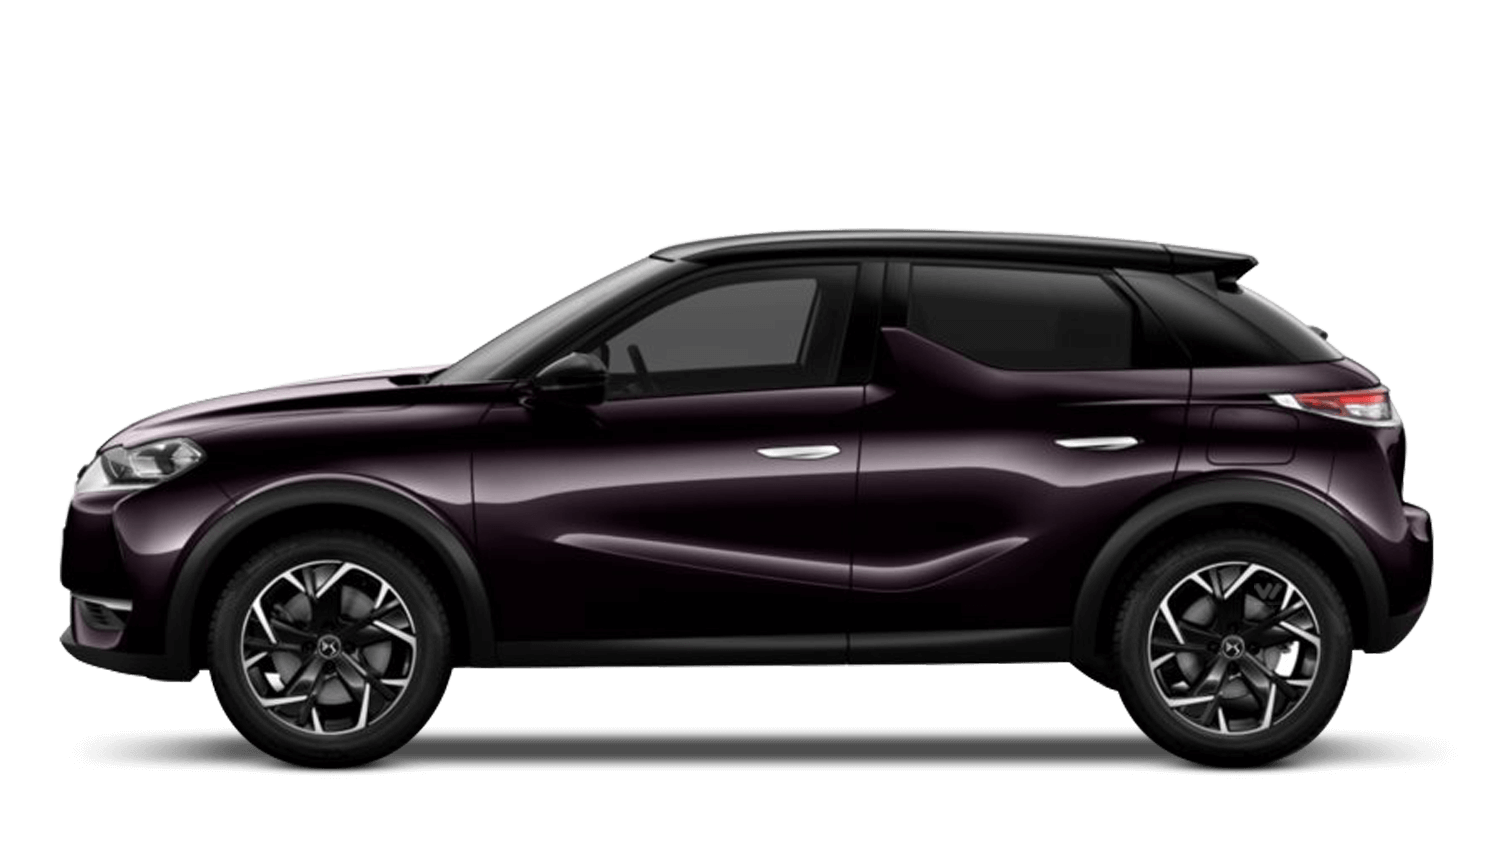 Whisper Purple (Metallic) DS 3 CROSSBACK